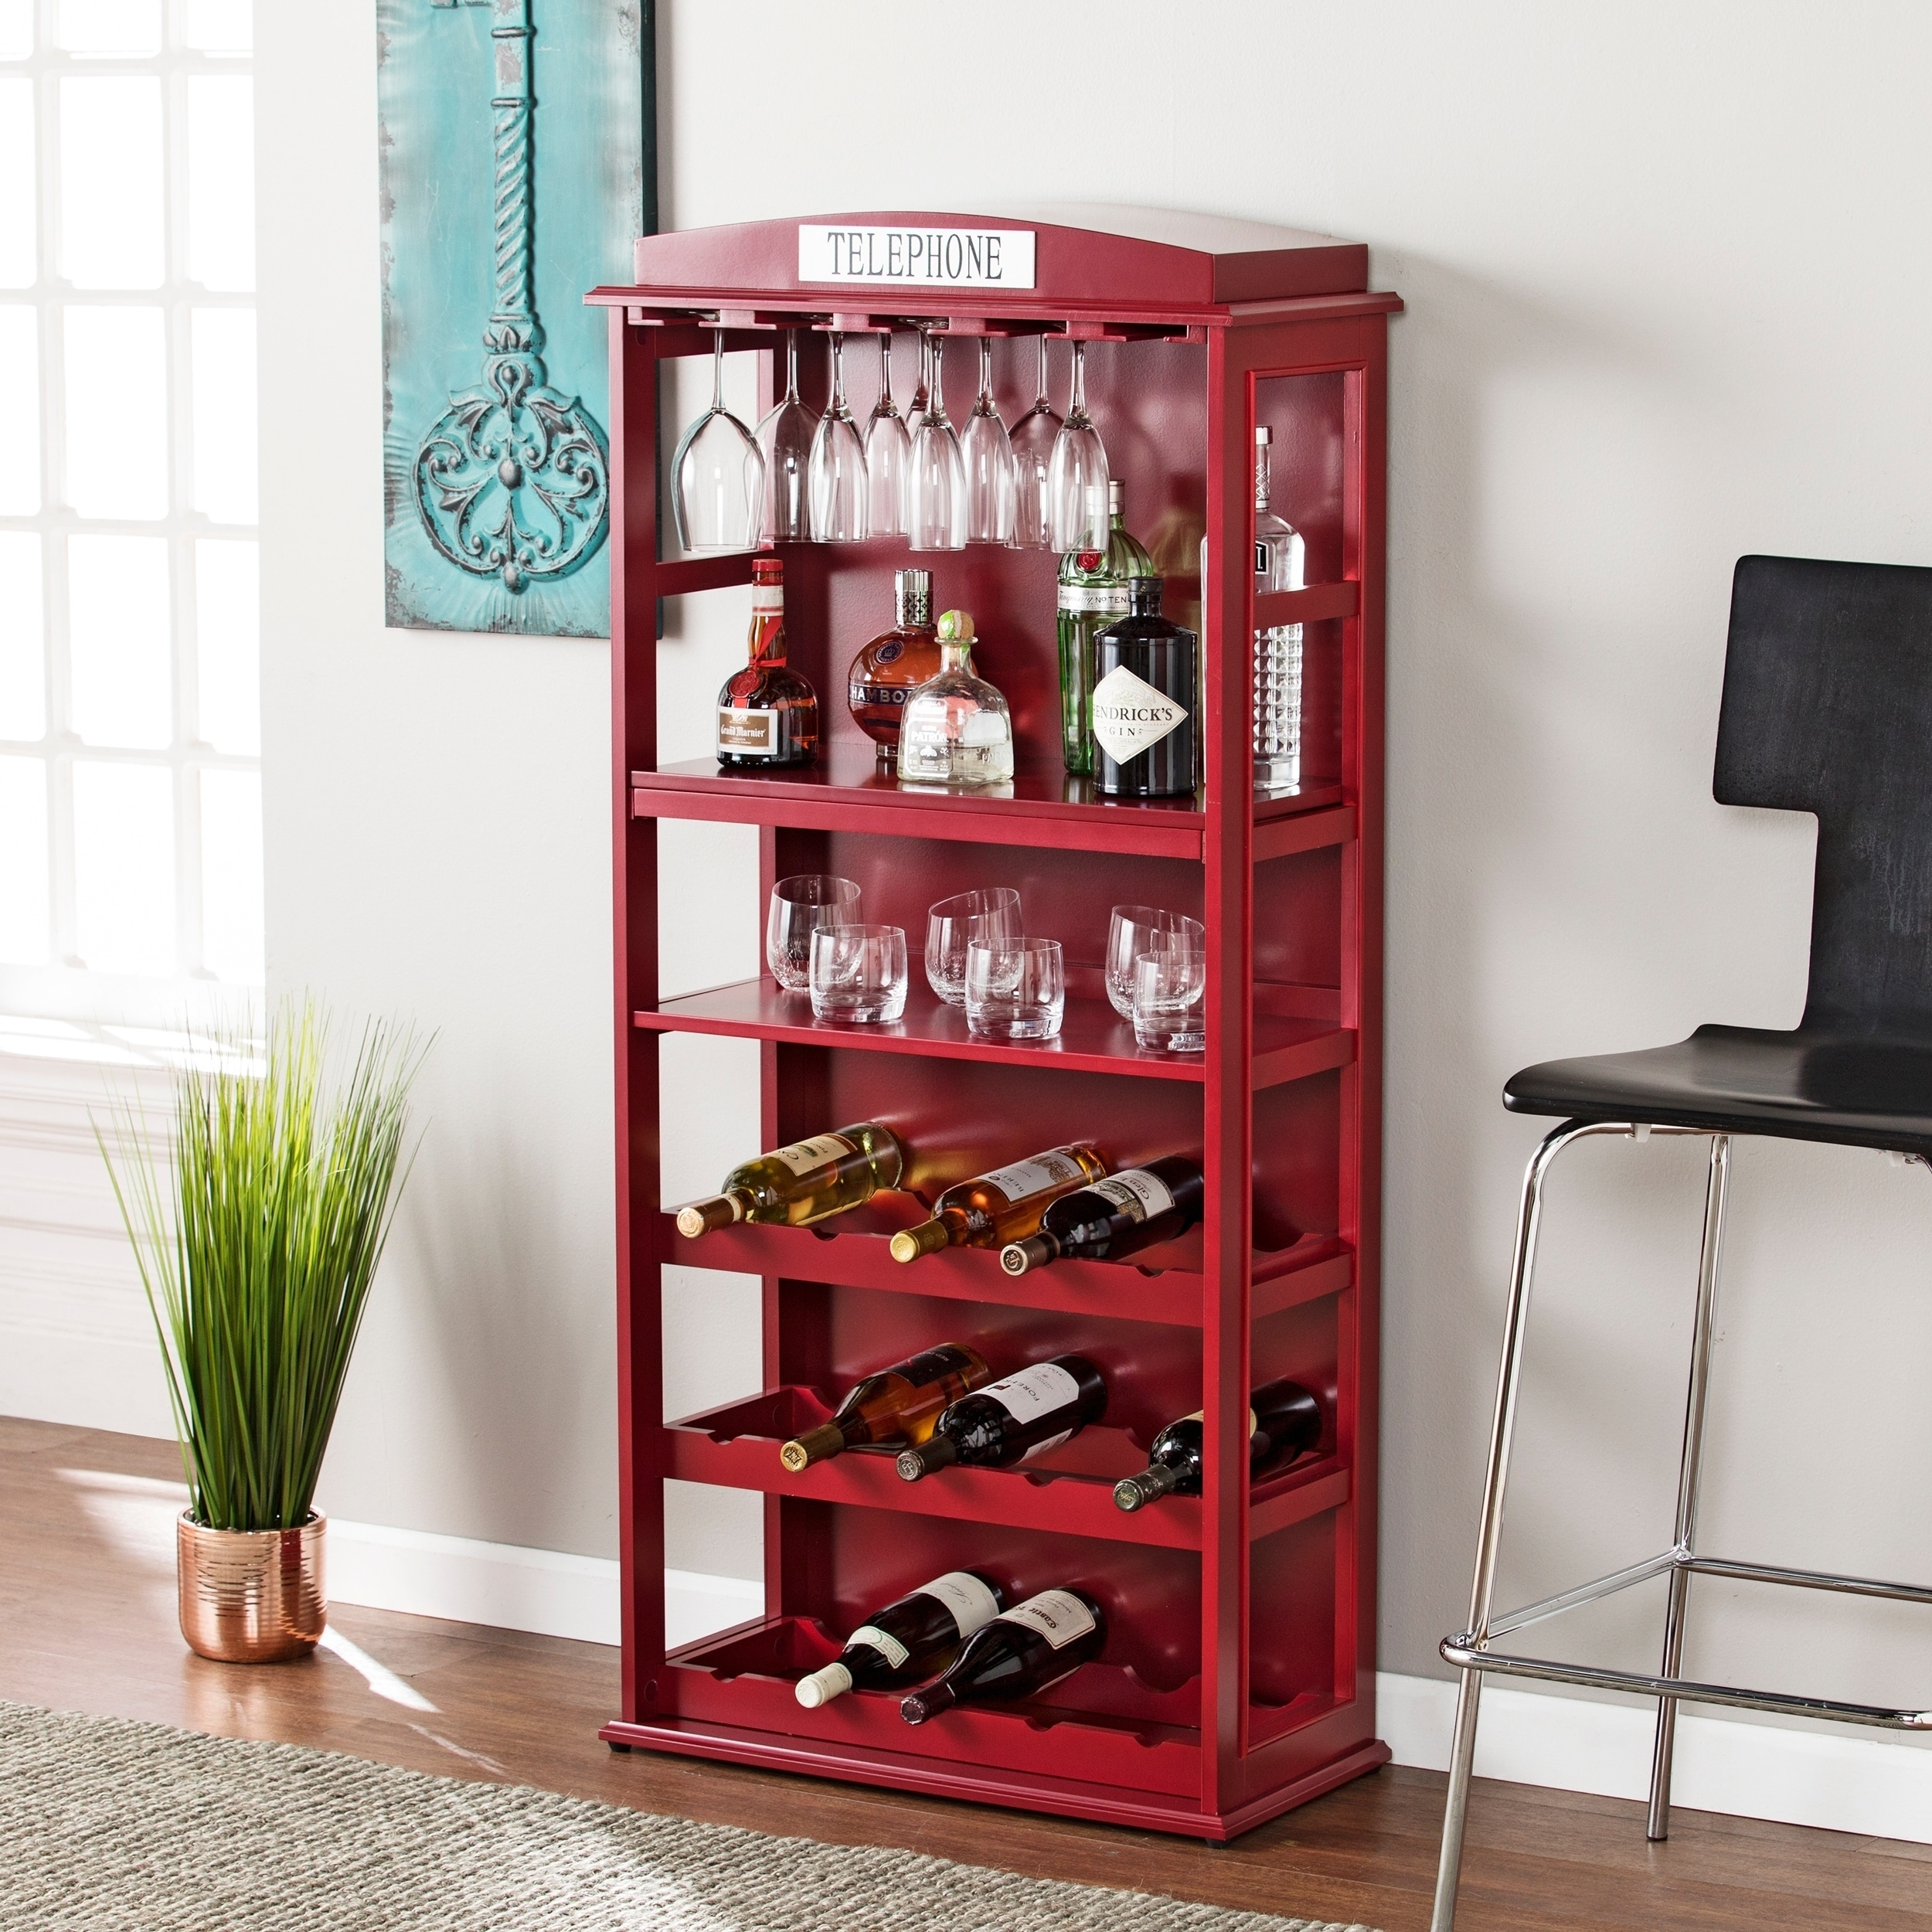 Mobile Minibar Per Casa Buy Home Bars Online At Overstock Our Best Dining Room Bar